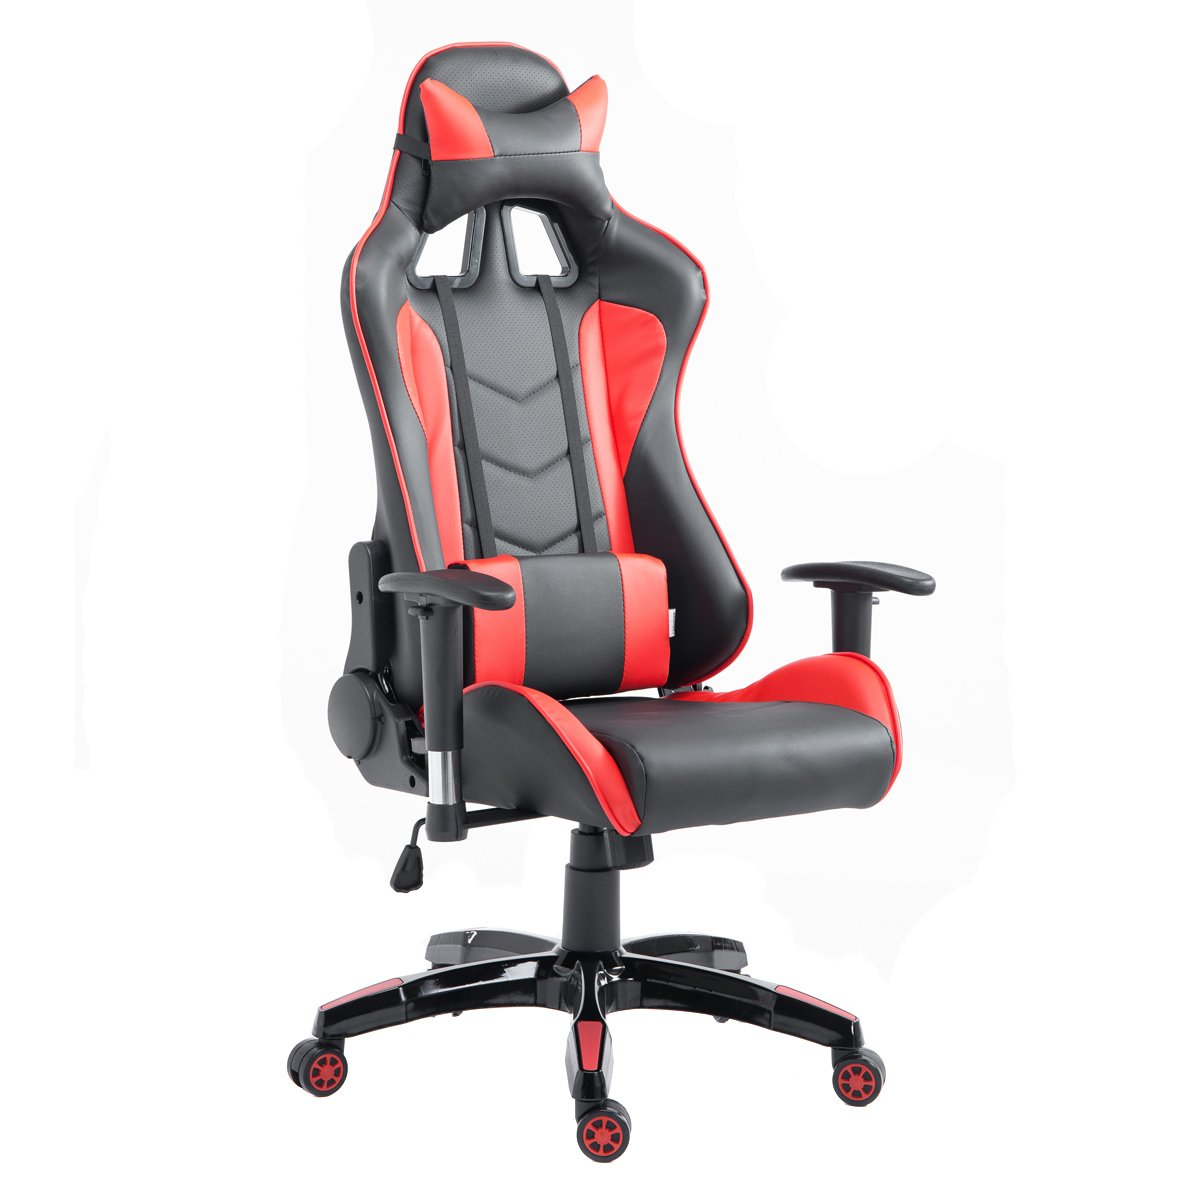 Giantex High Back Executive Racing Reclining Gaming Chair Swivel PU Leather Office Chair (Red)